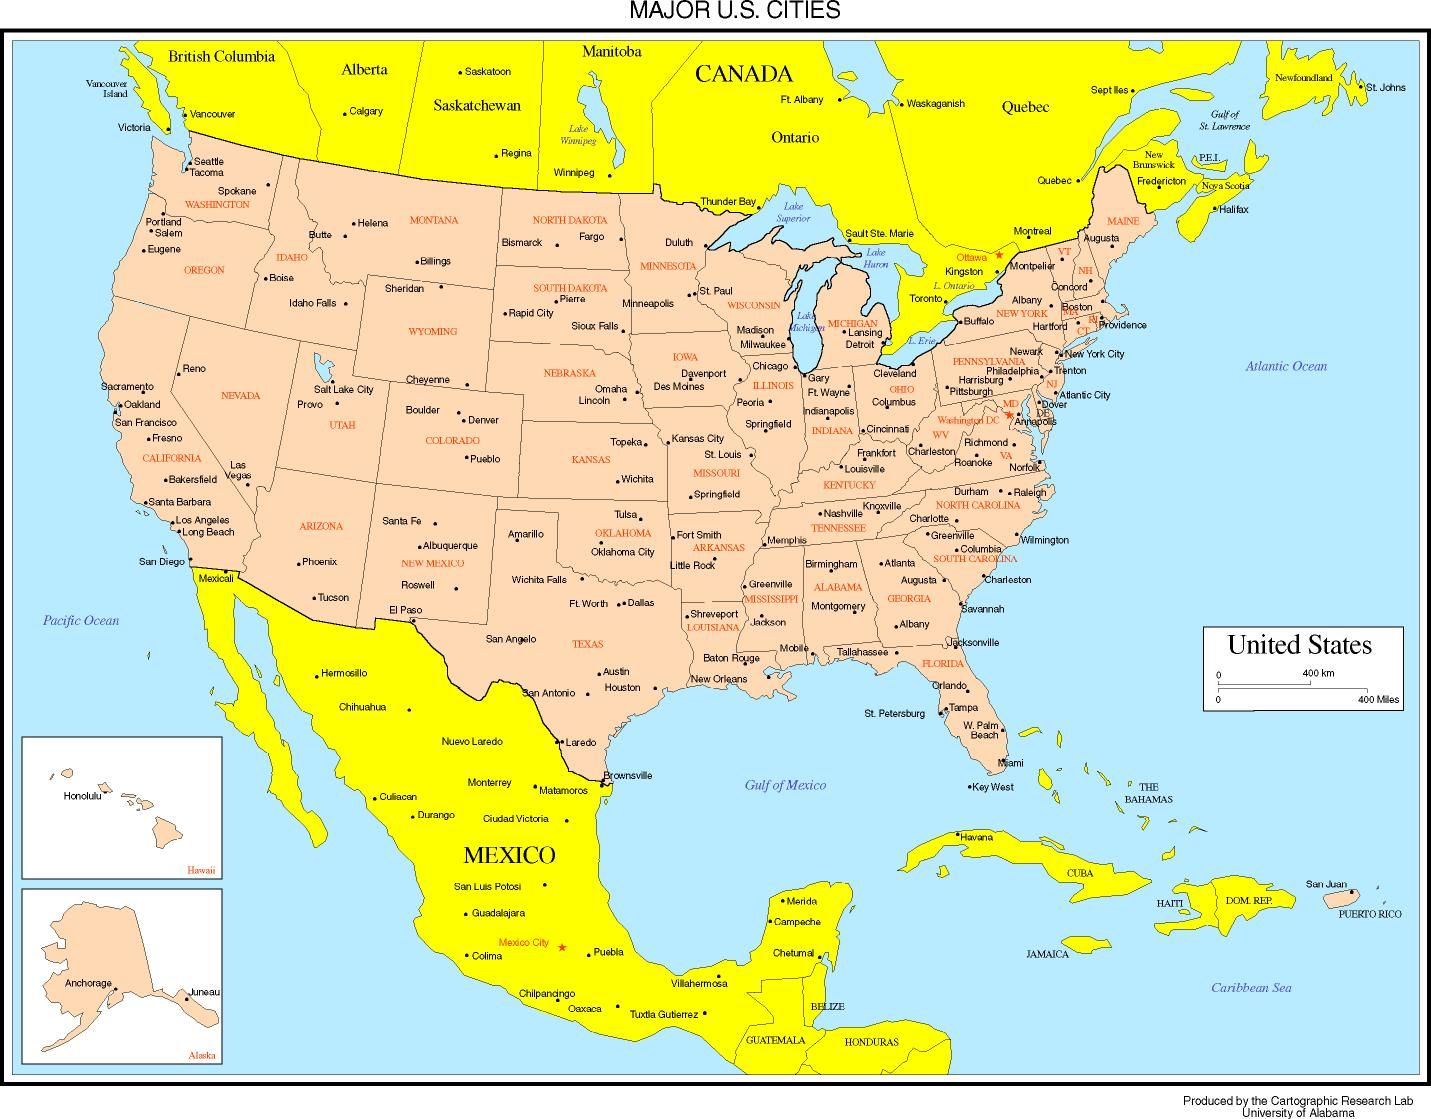 united states map Yahoo Search Results Yahoo Image Search Results